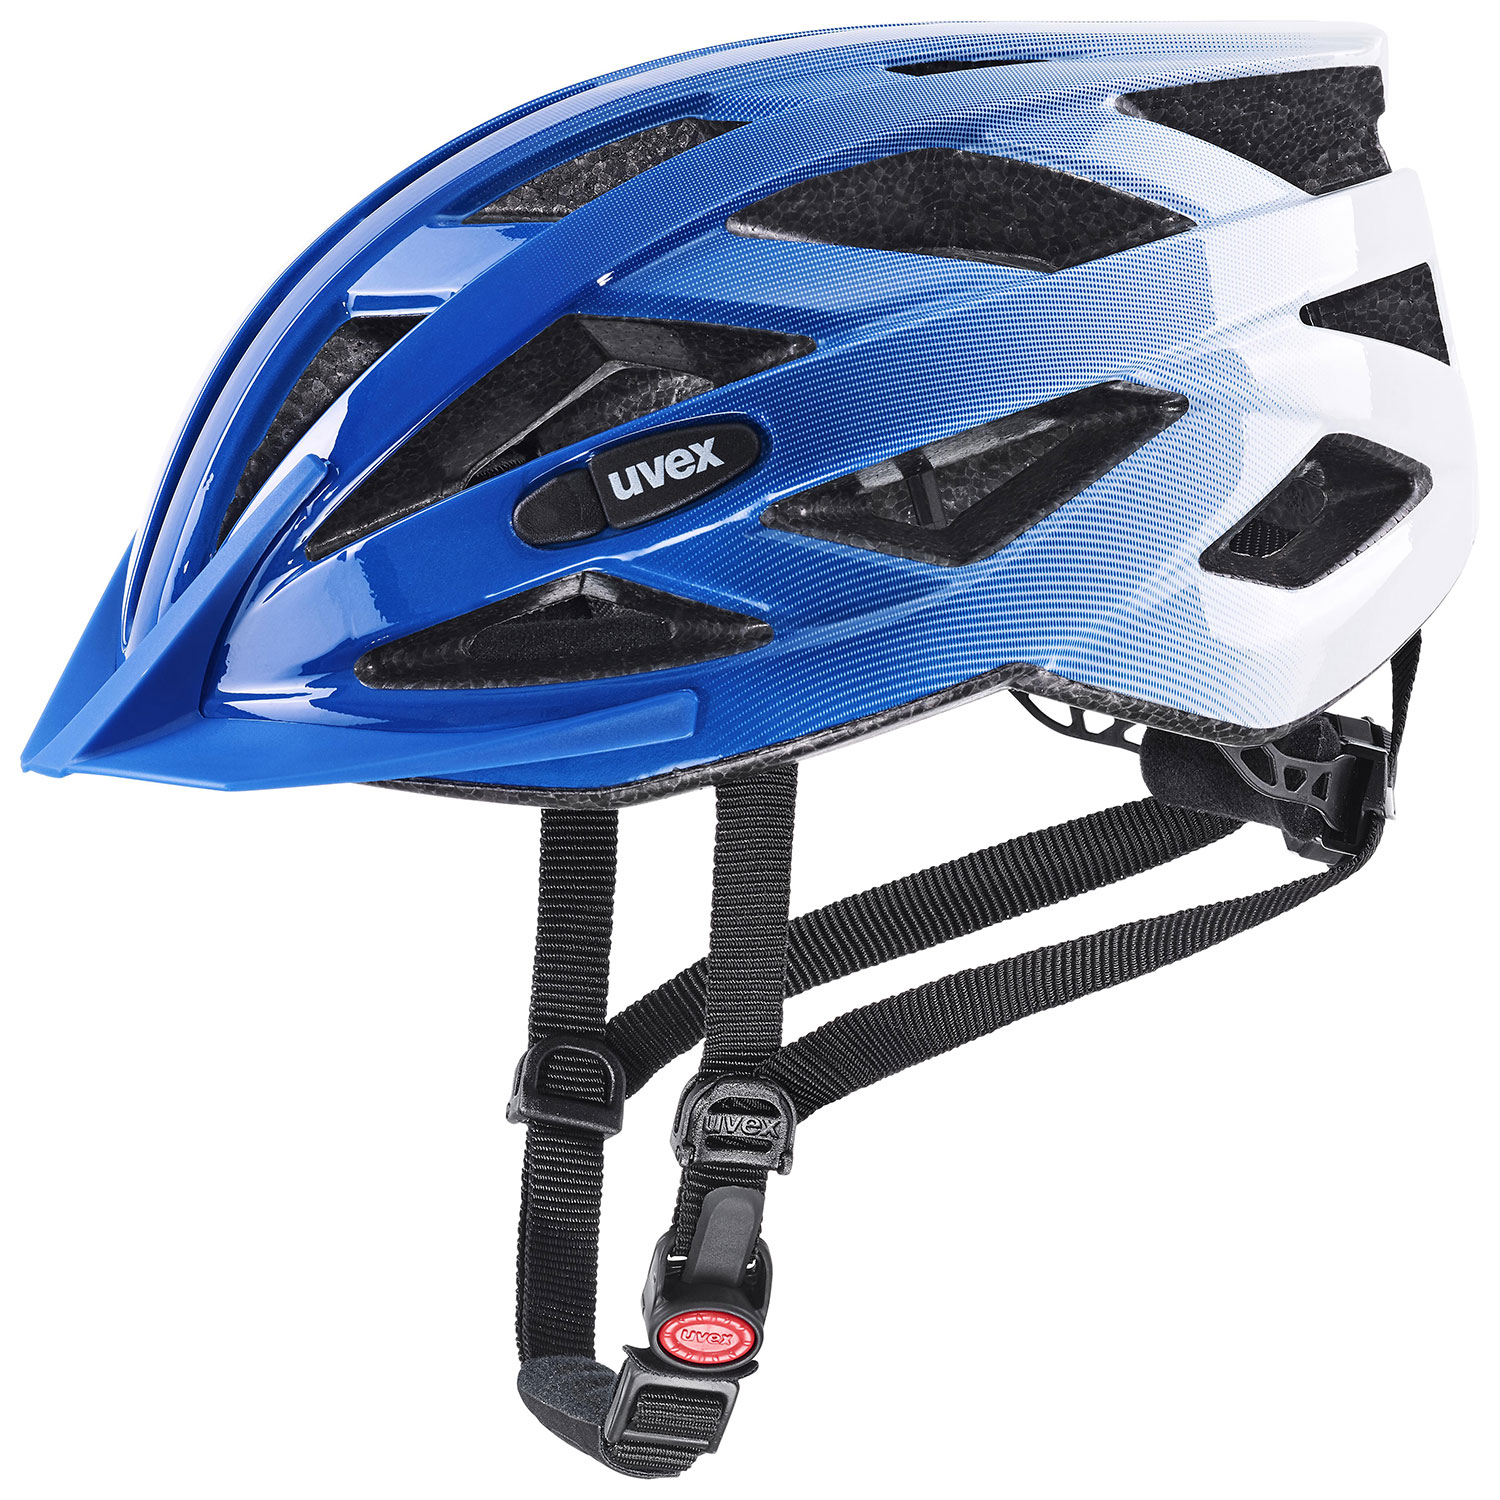 2021 UVEX HELMA AIR WING, COBALT - WHITE 52-57